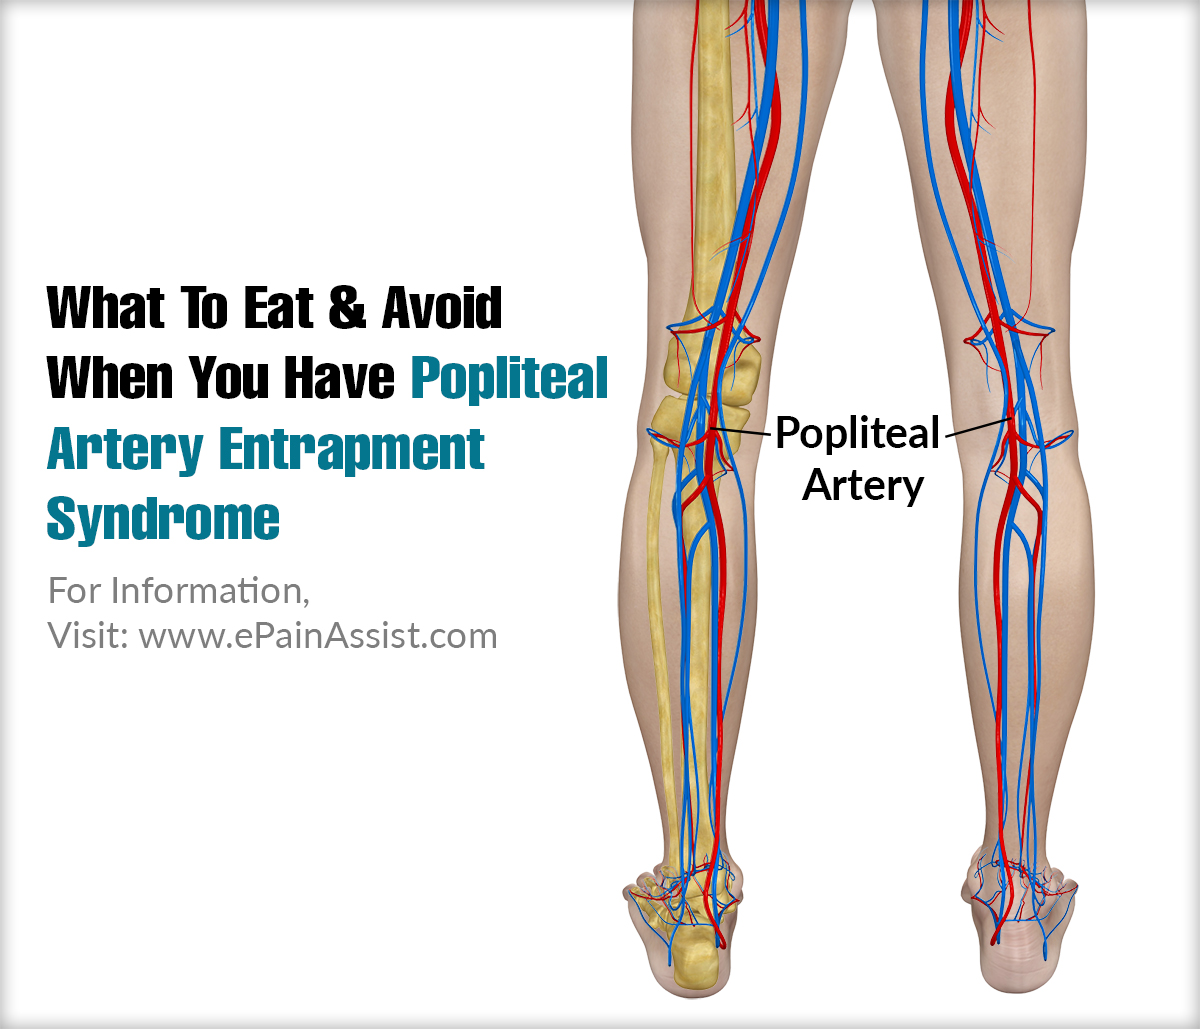 What To Eat & Avoid When You Have Popliteal Artery Entrapment Syndrome?